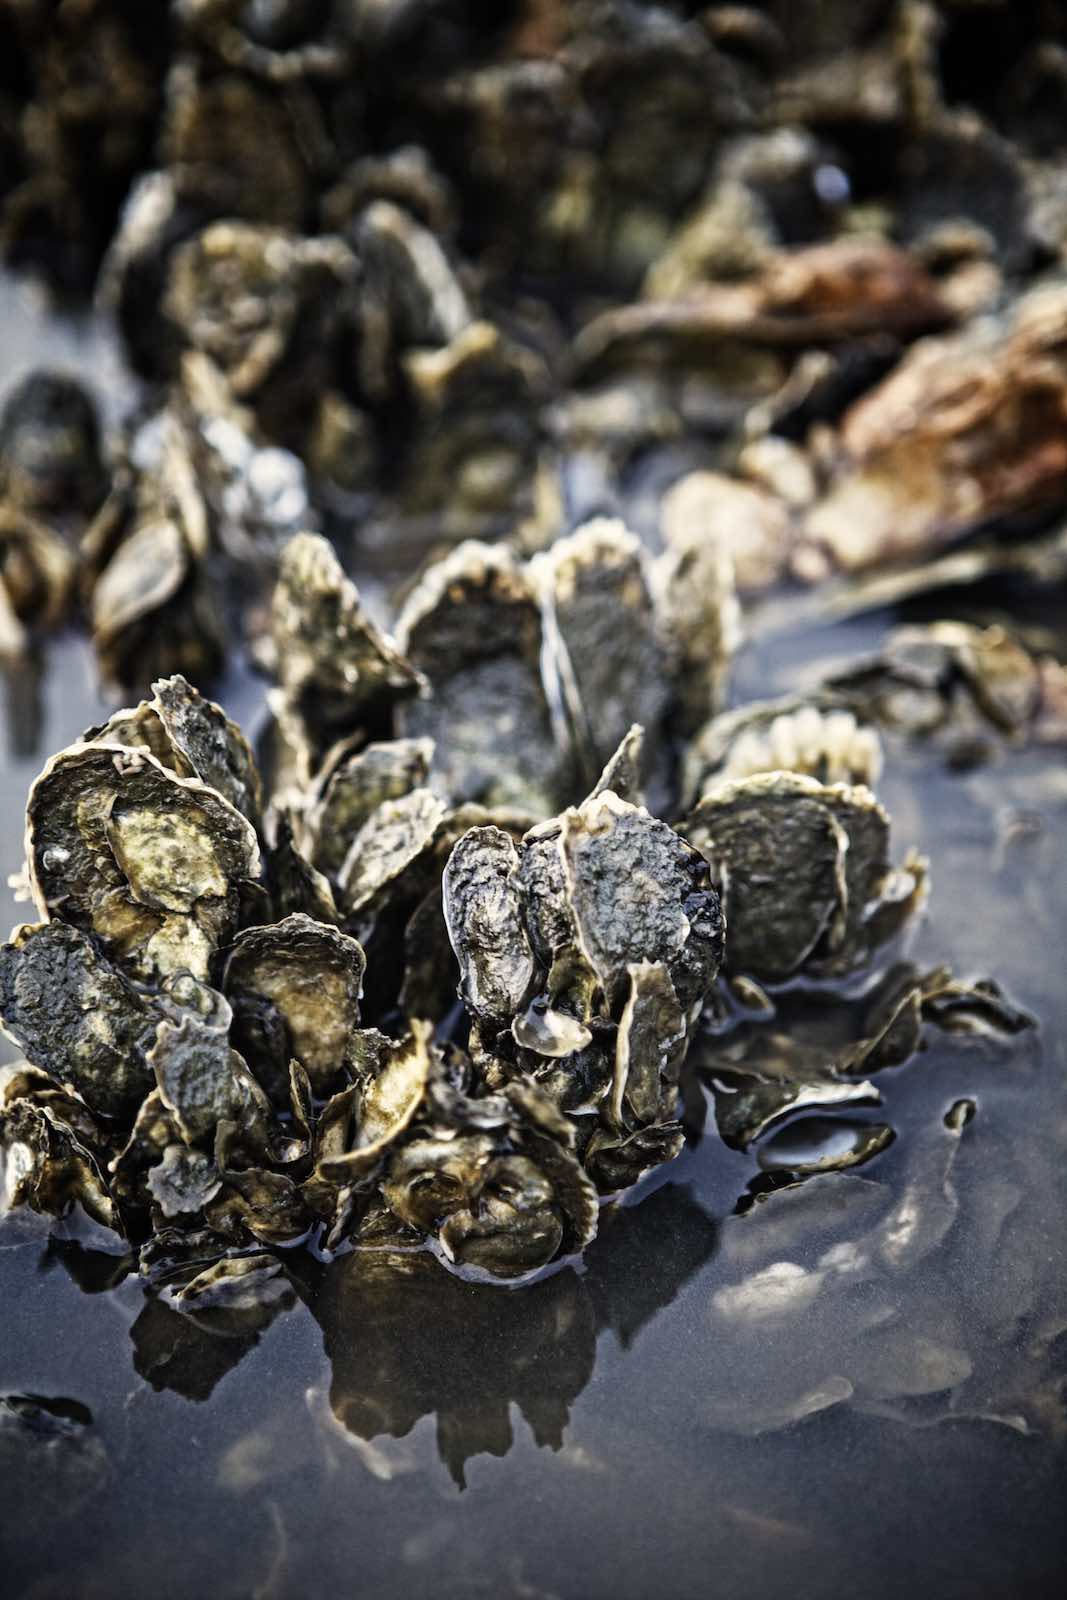 Jody Horton Photography - Collections of fresh oysters in clear water.